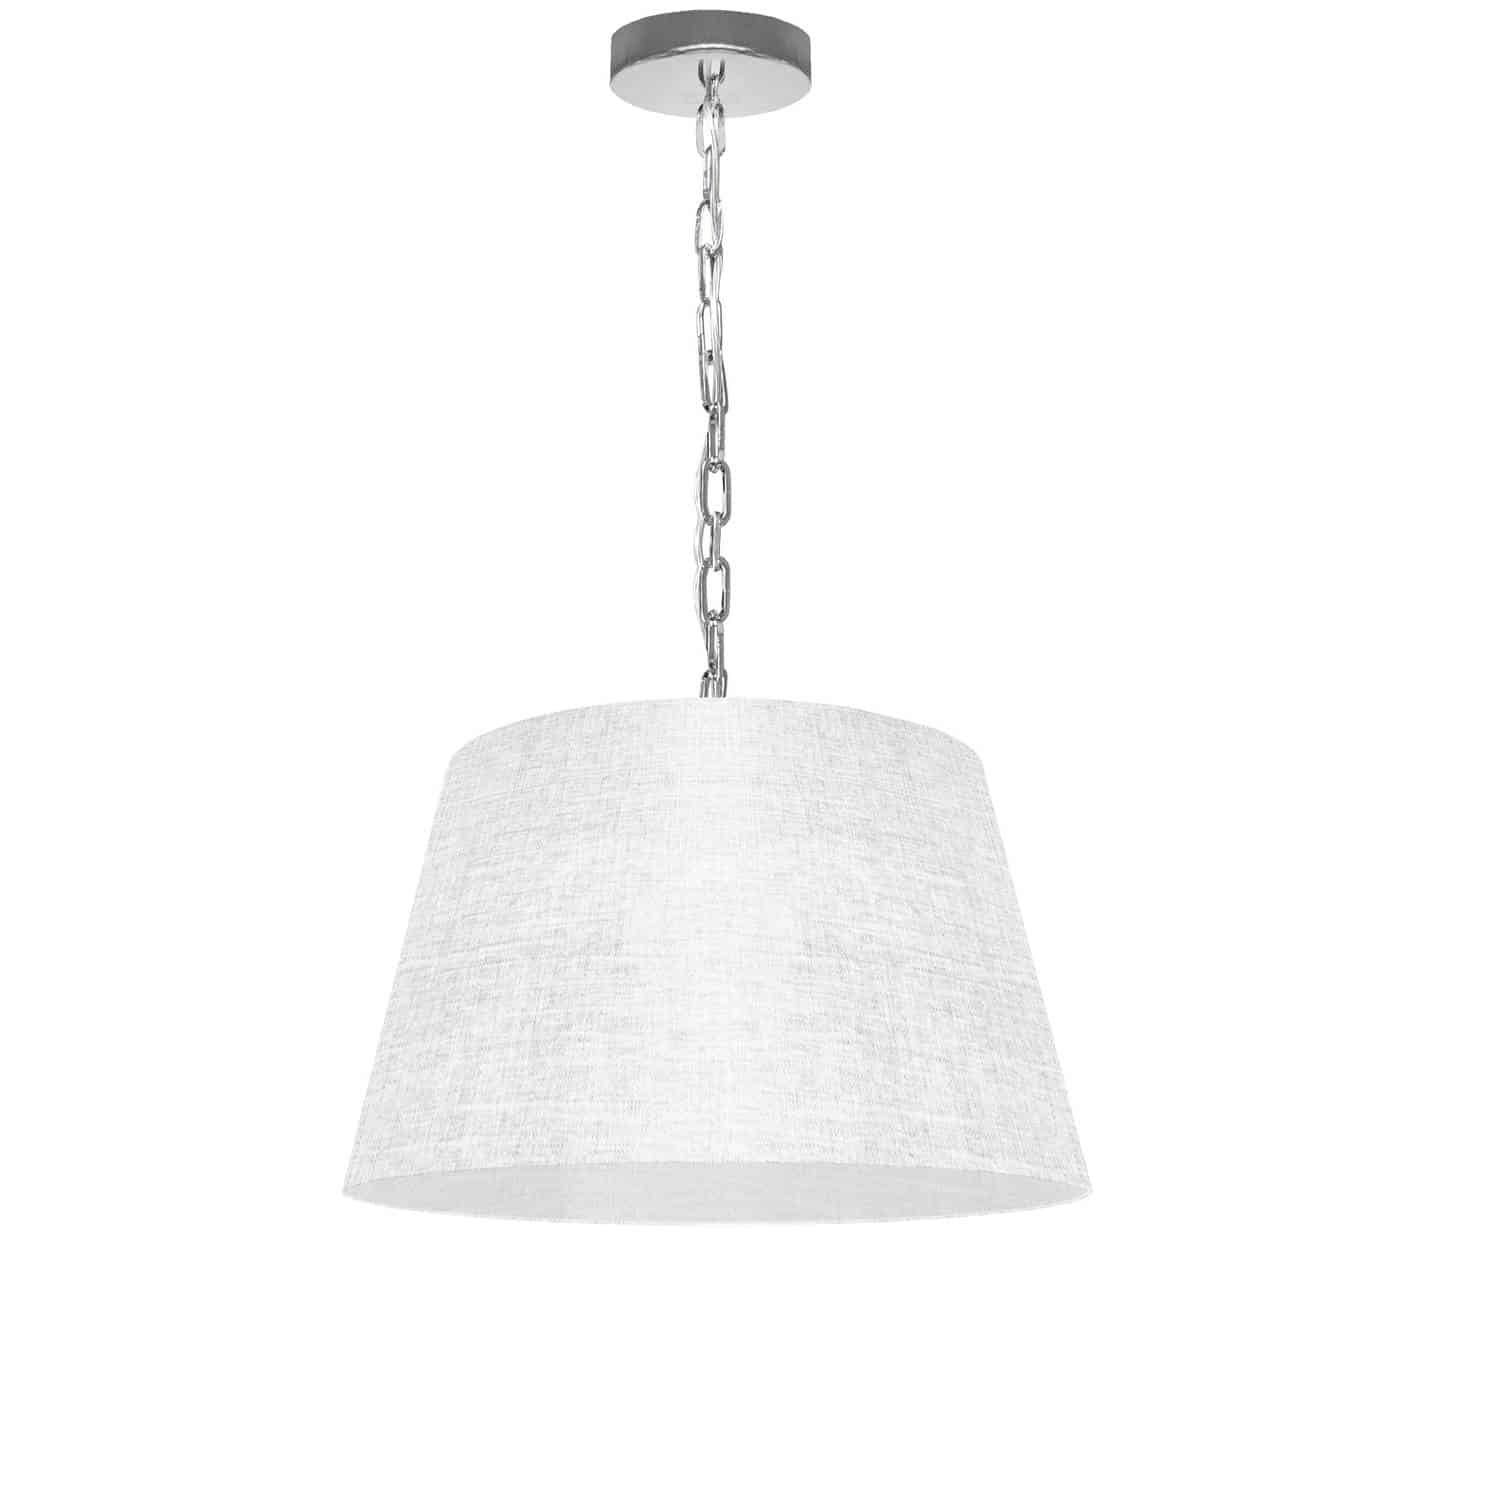 1 Light Brynn Small Pendant, White/Clear Shade, Polished Chrome